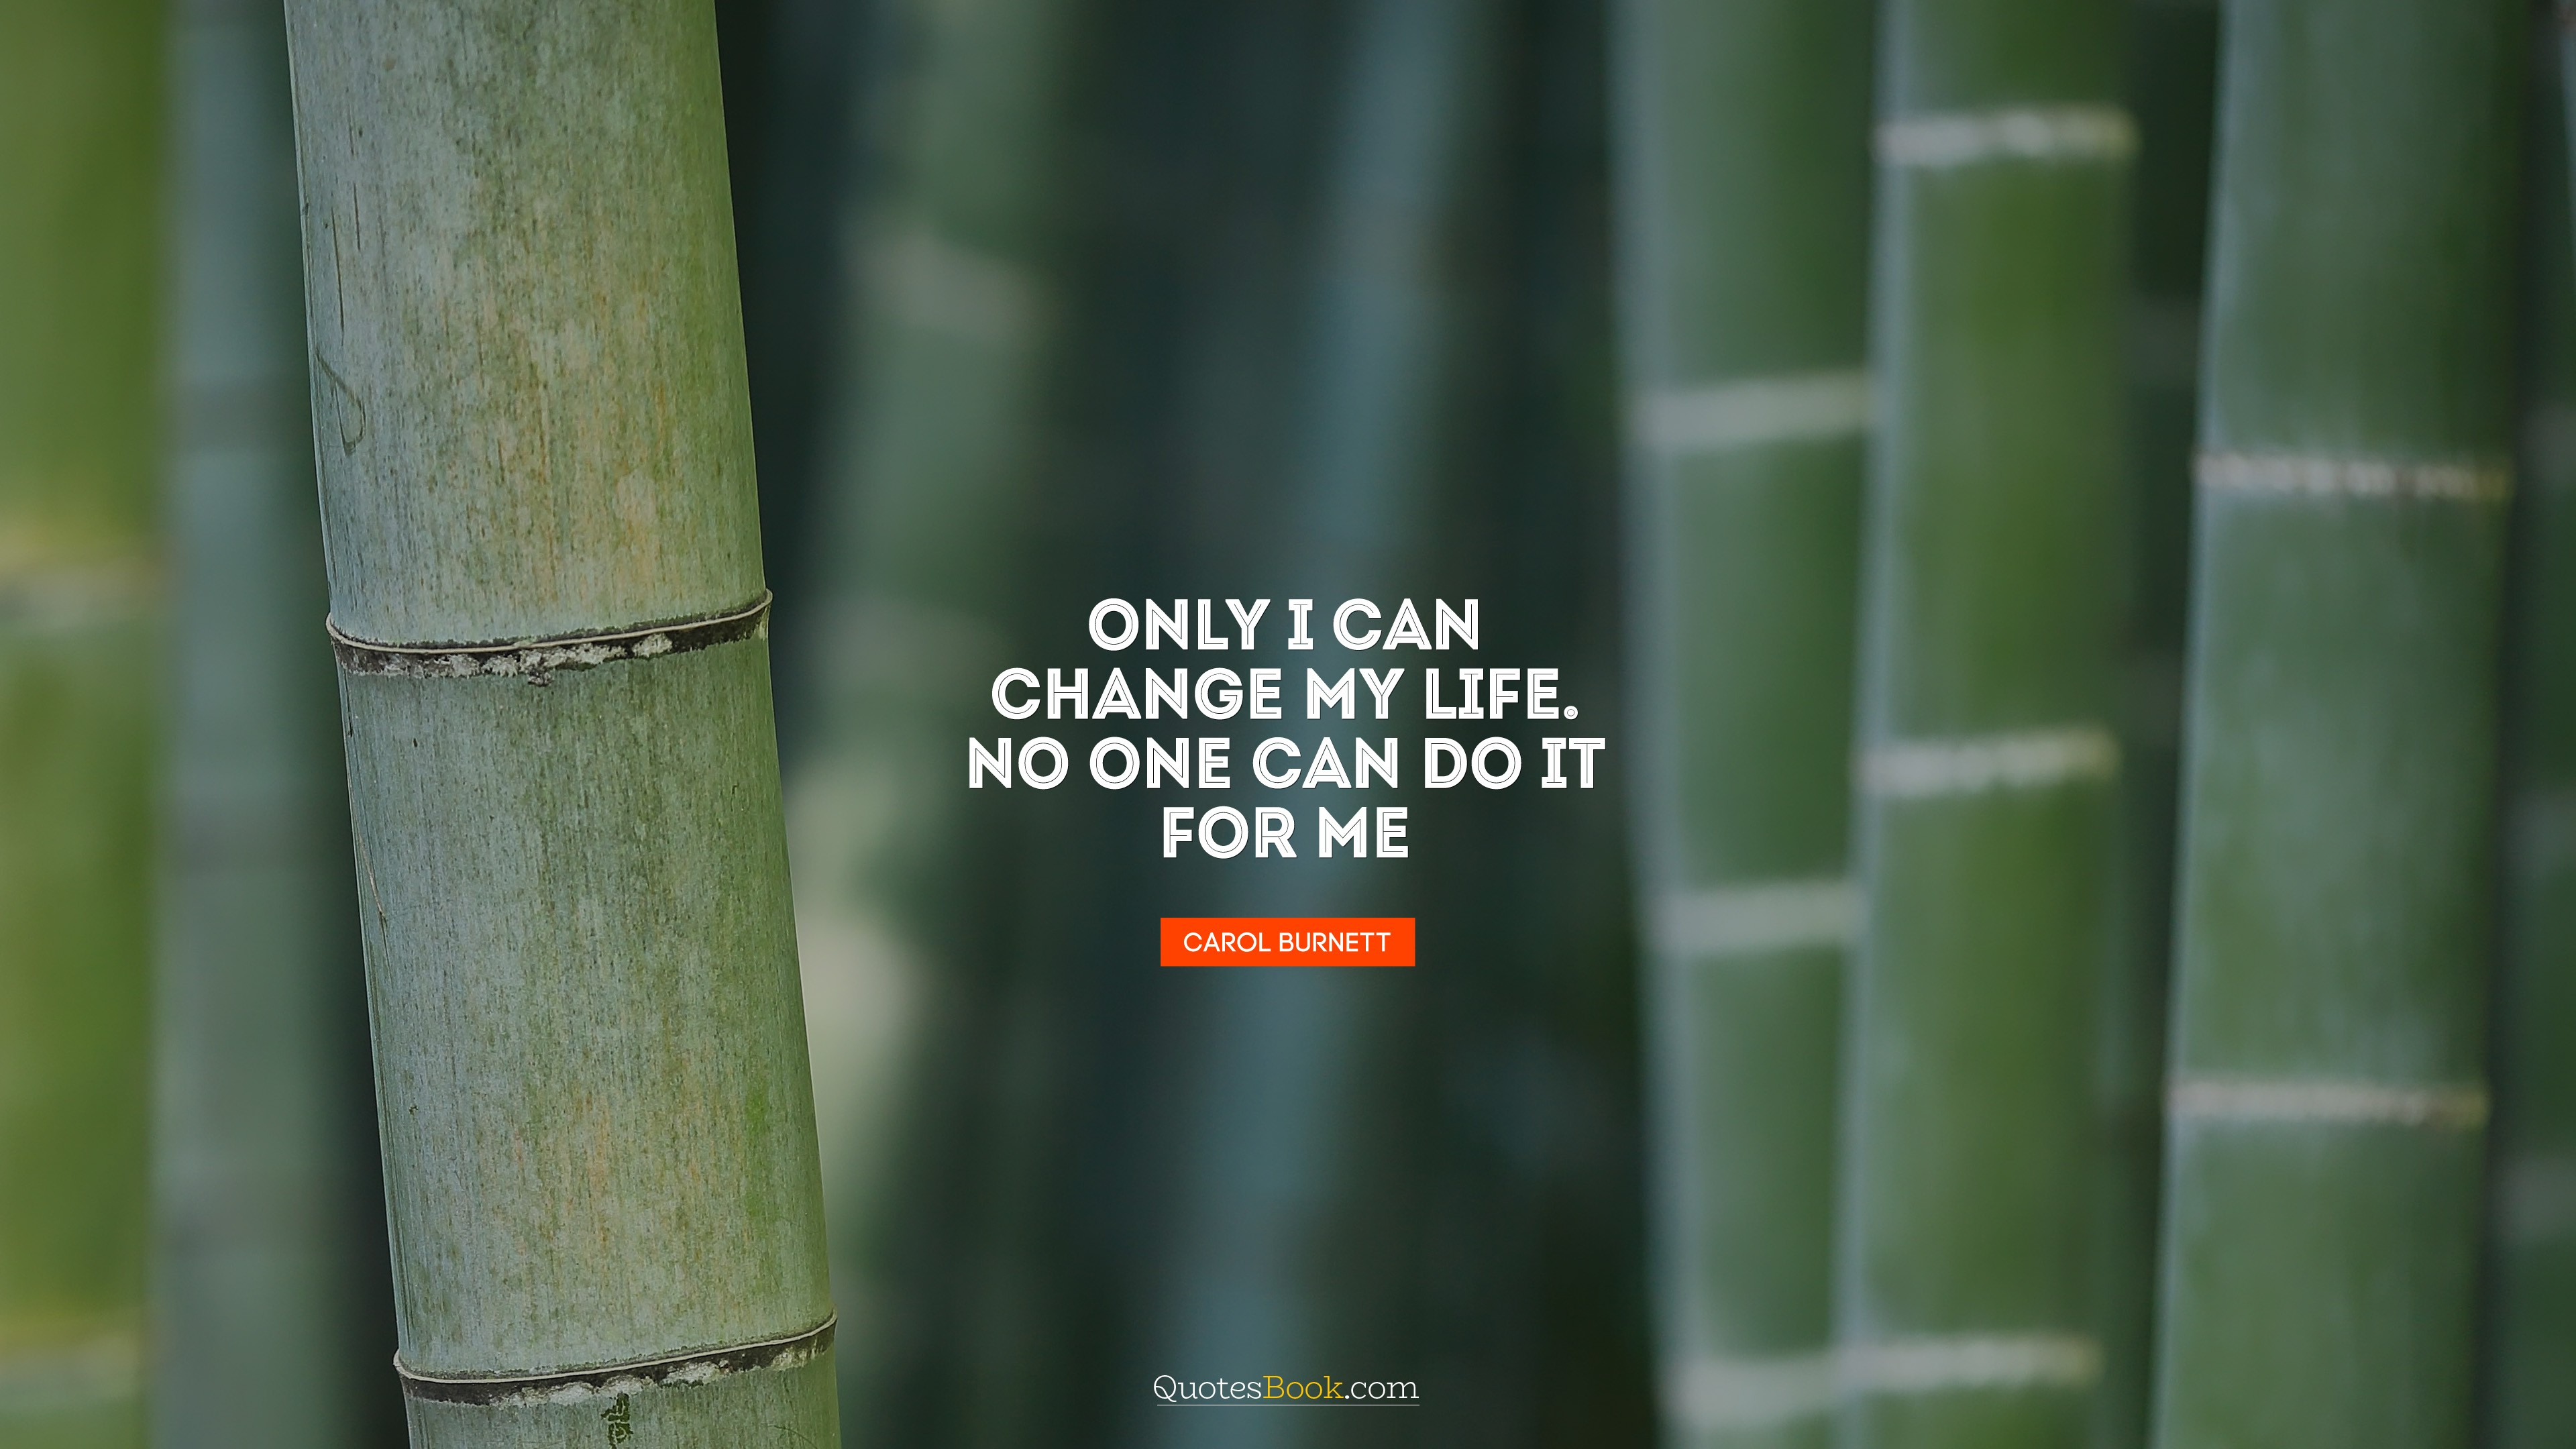 """ONLY I CAN CHANGE MY LIFE. NO ONE CAN DO IT FOR ME"" – CAROL BURNETT [3840 X 2160]"